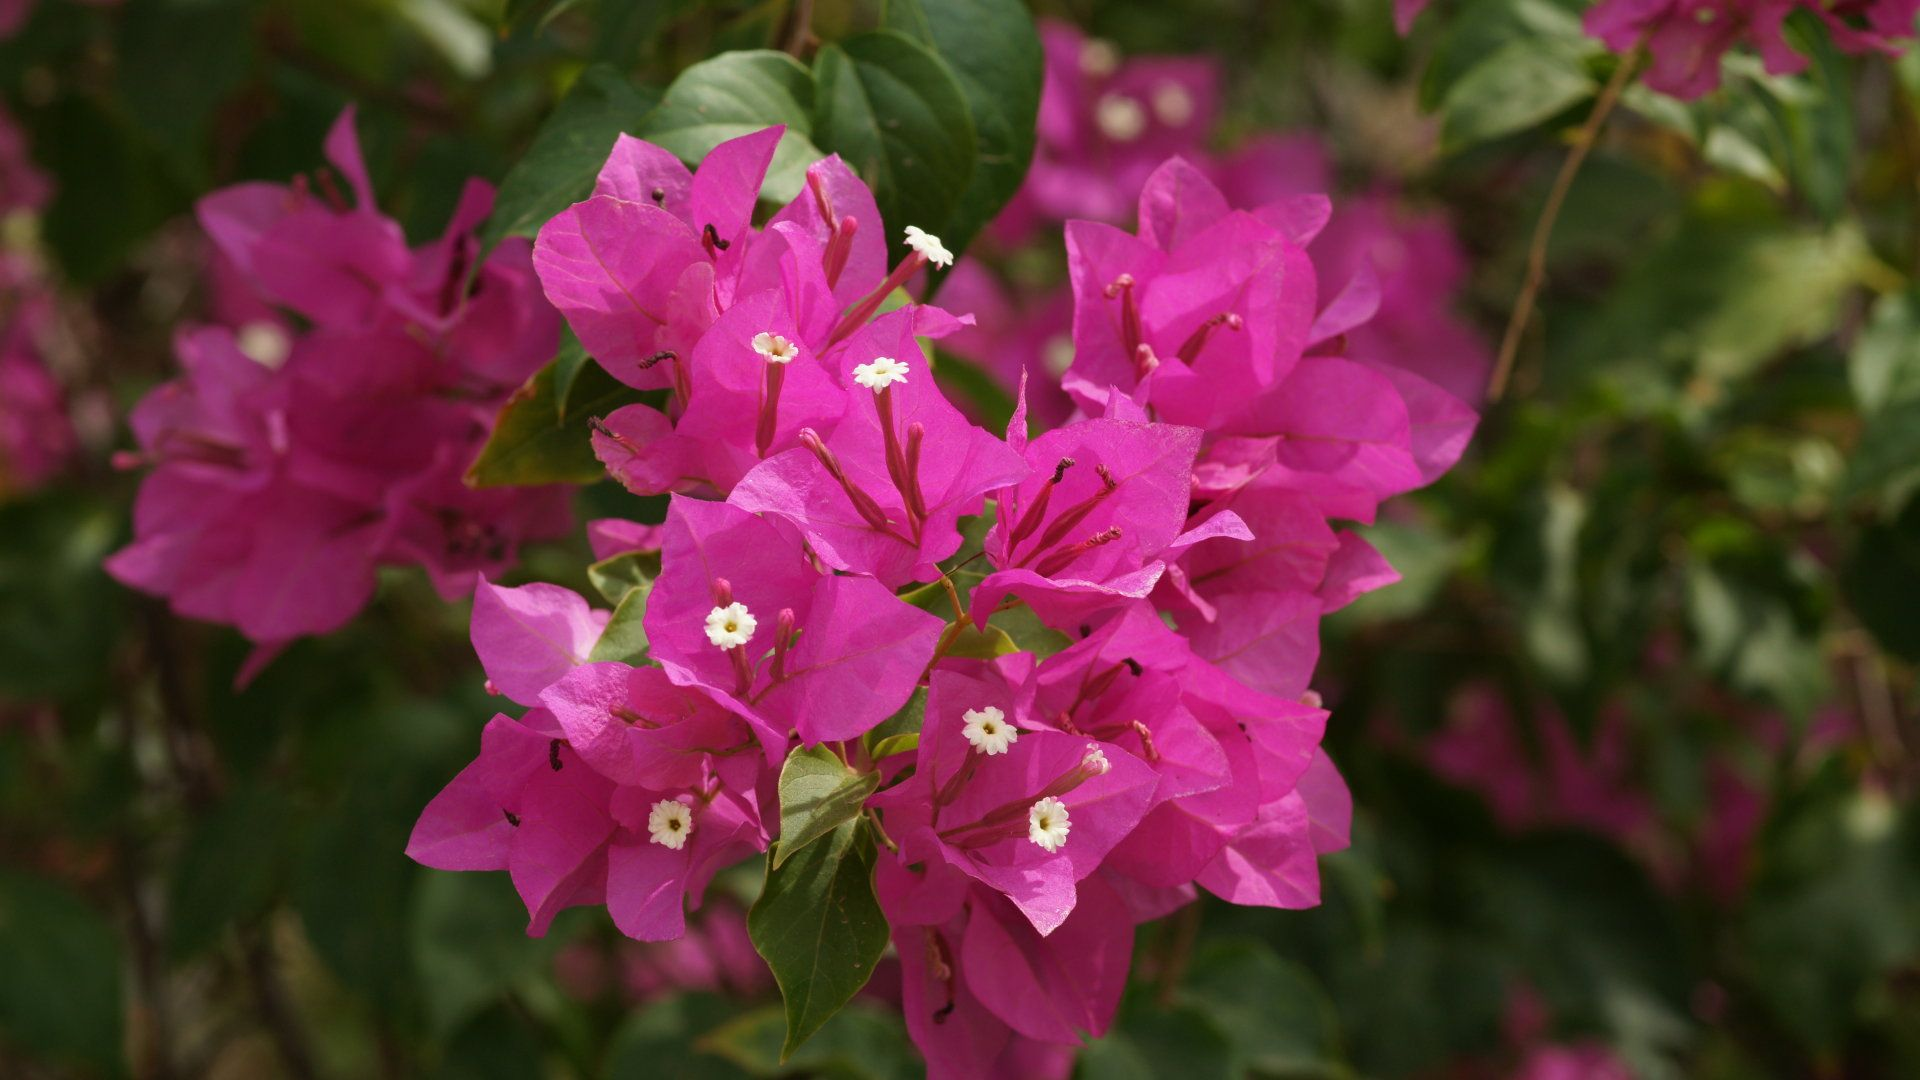 Bougainvillea Flower These Are All Over Casa A It Would Be Nice To Incorporate Flowers That Go With Into Our Own Bouquets Pma